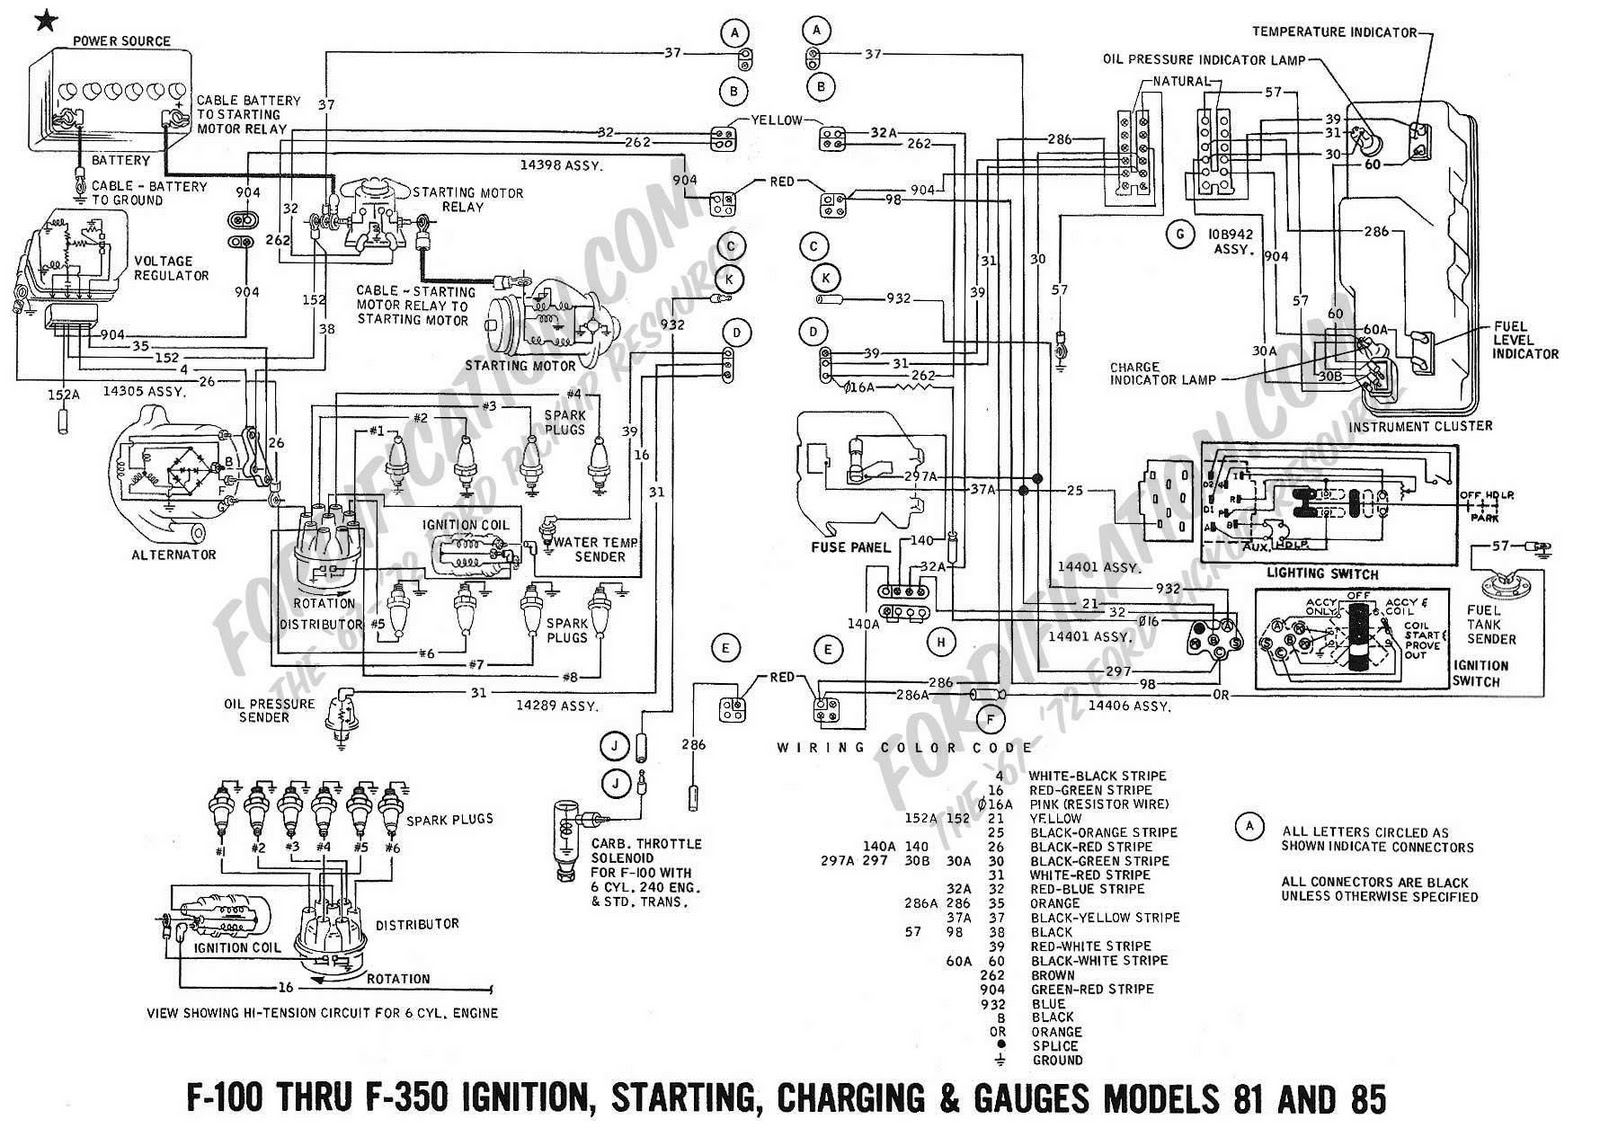 65 Ford Galaxie Wiring Diagram Schematic Blog About Wiring Diagrams 1970  Ford Mustang Wiring Diagram 1966 Ford Galaxie 500 Wiring Diagram